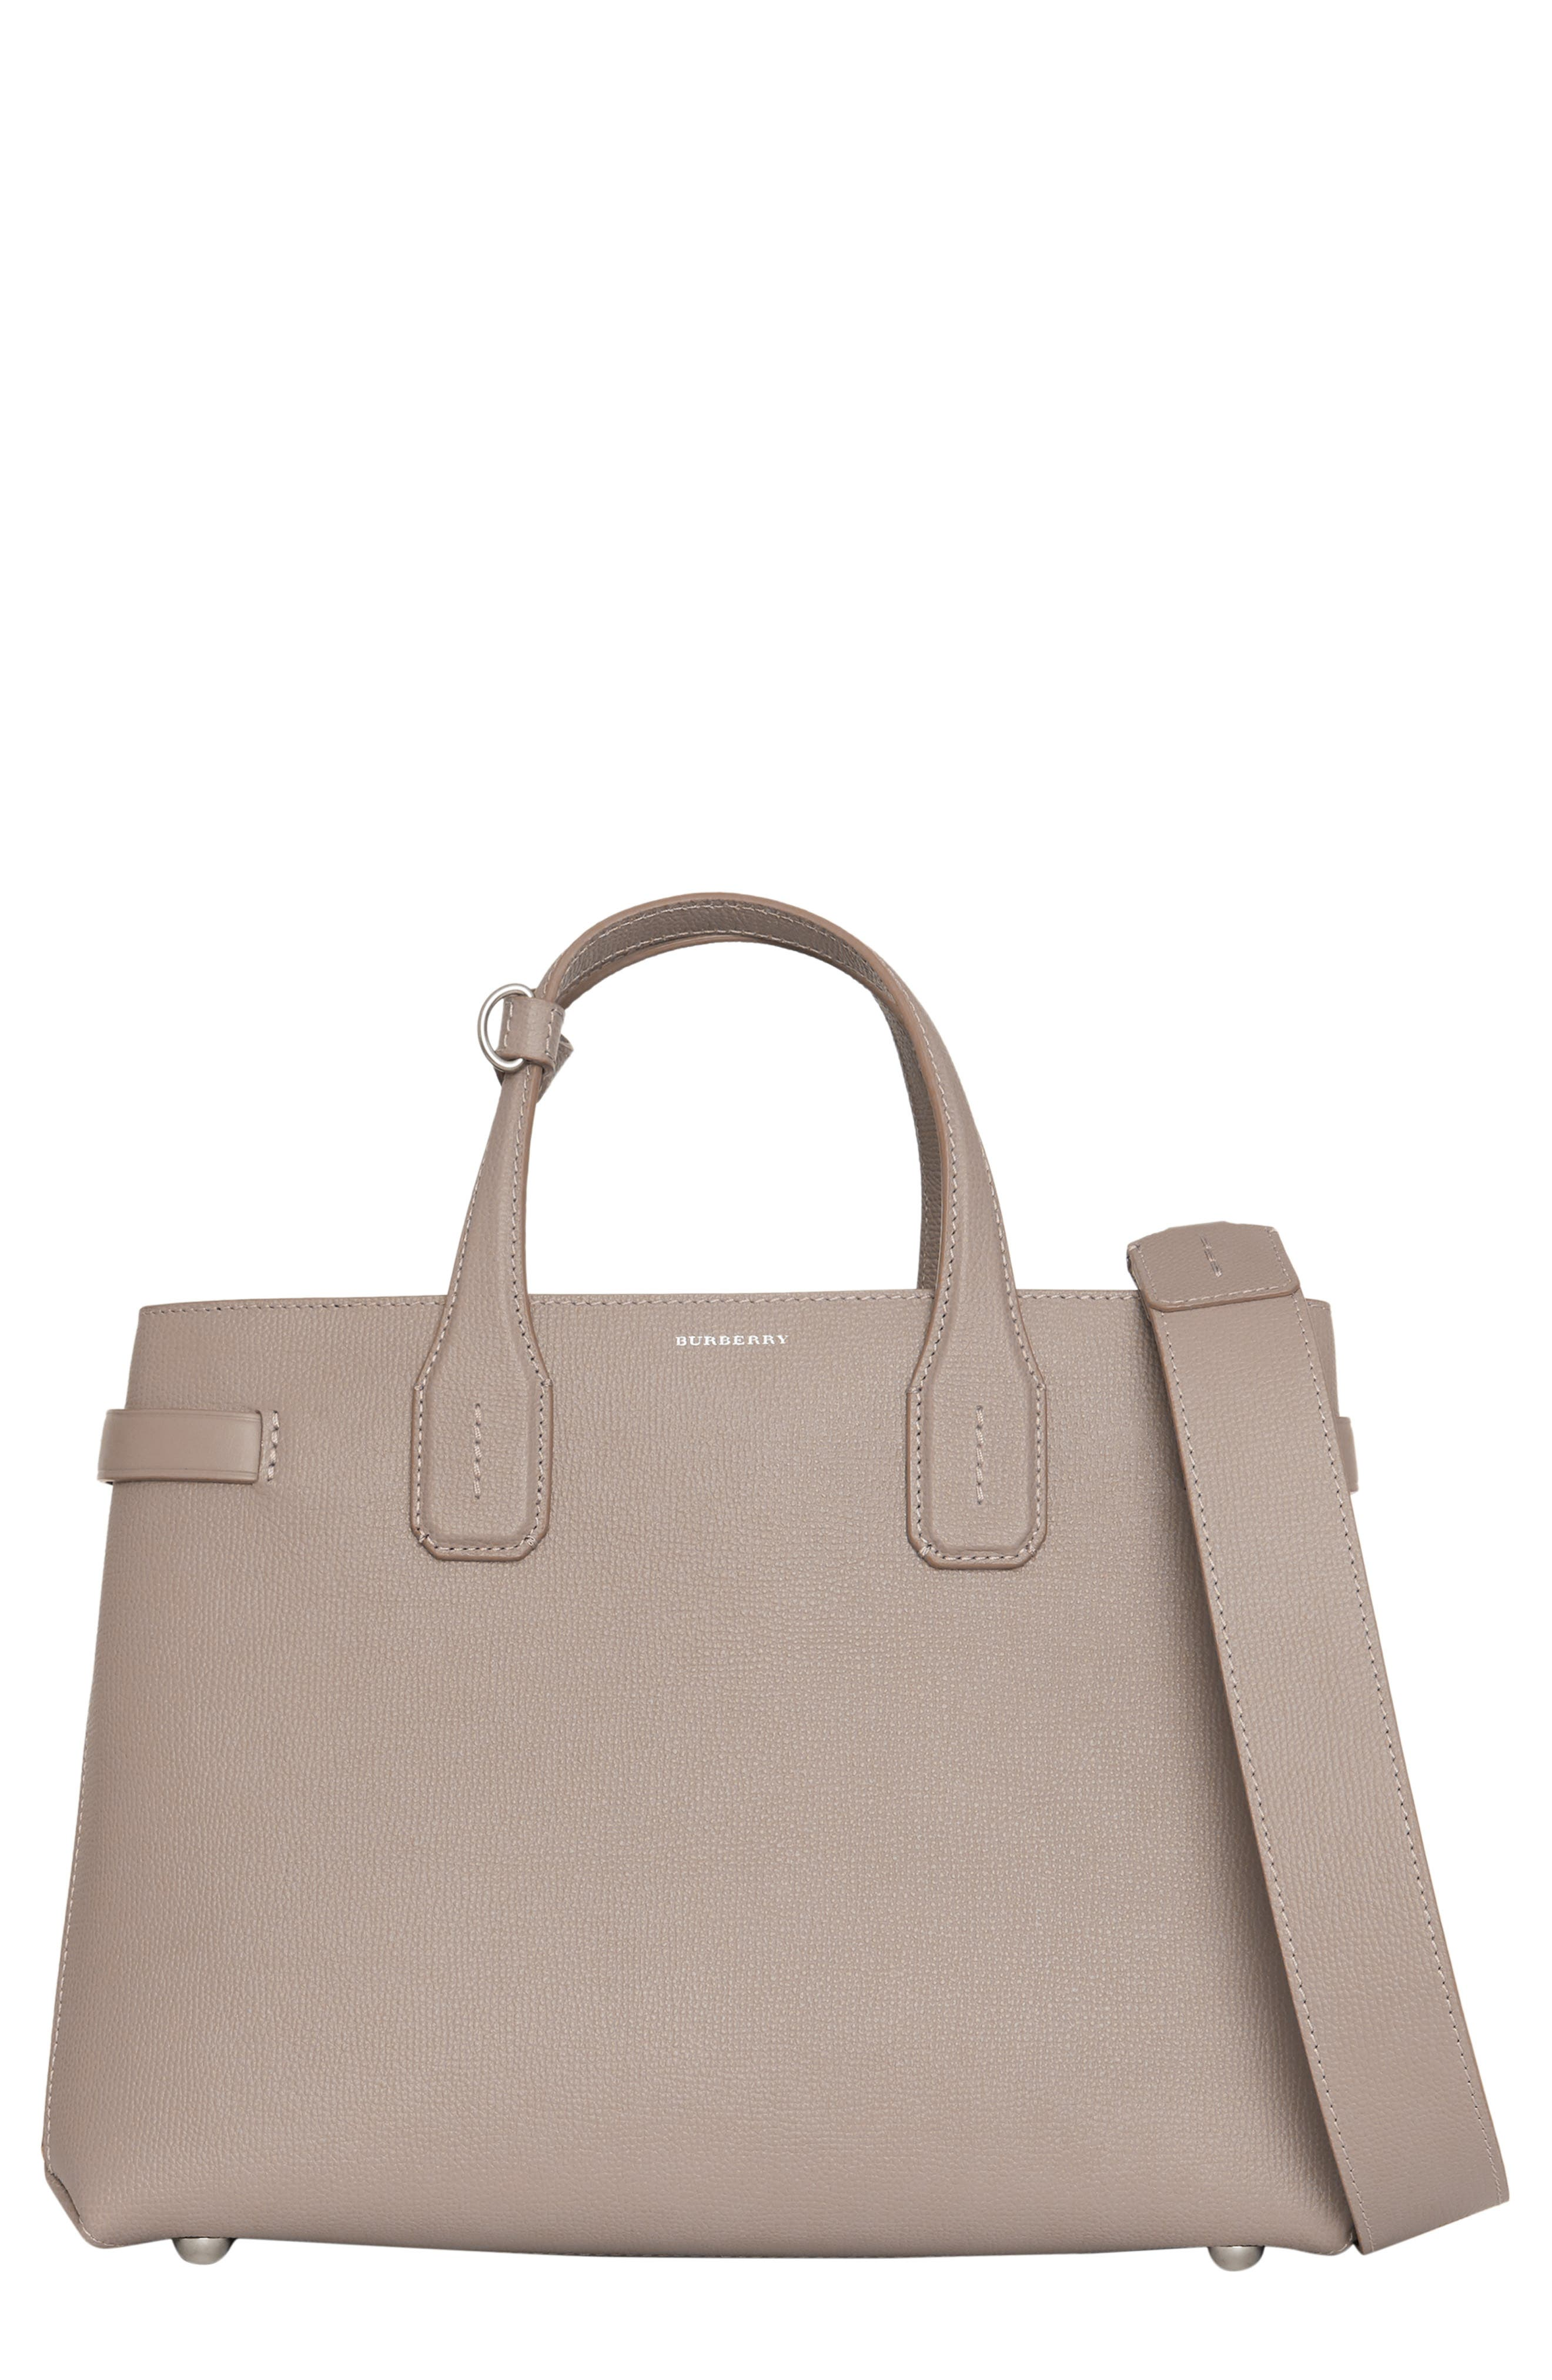 Medium Banner Leather Tote,                             Main thumbnail 1, color,                             TAUPE BROWN